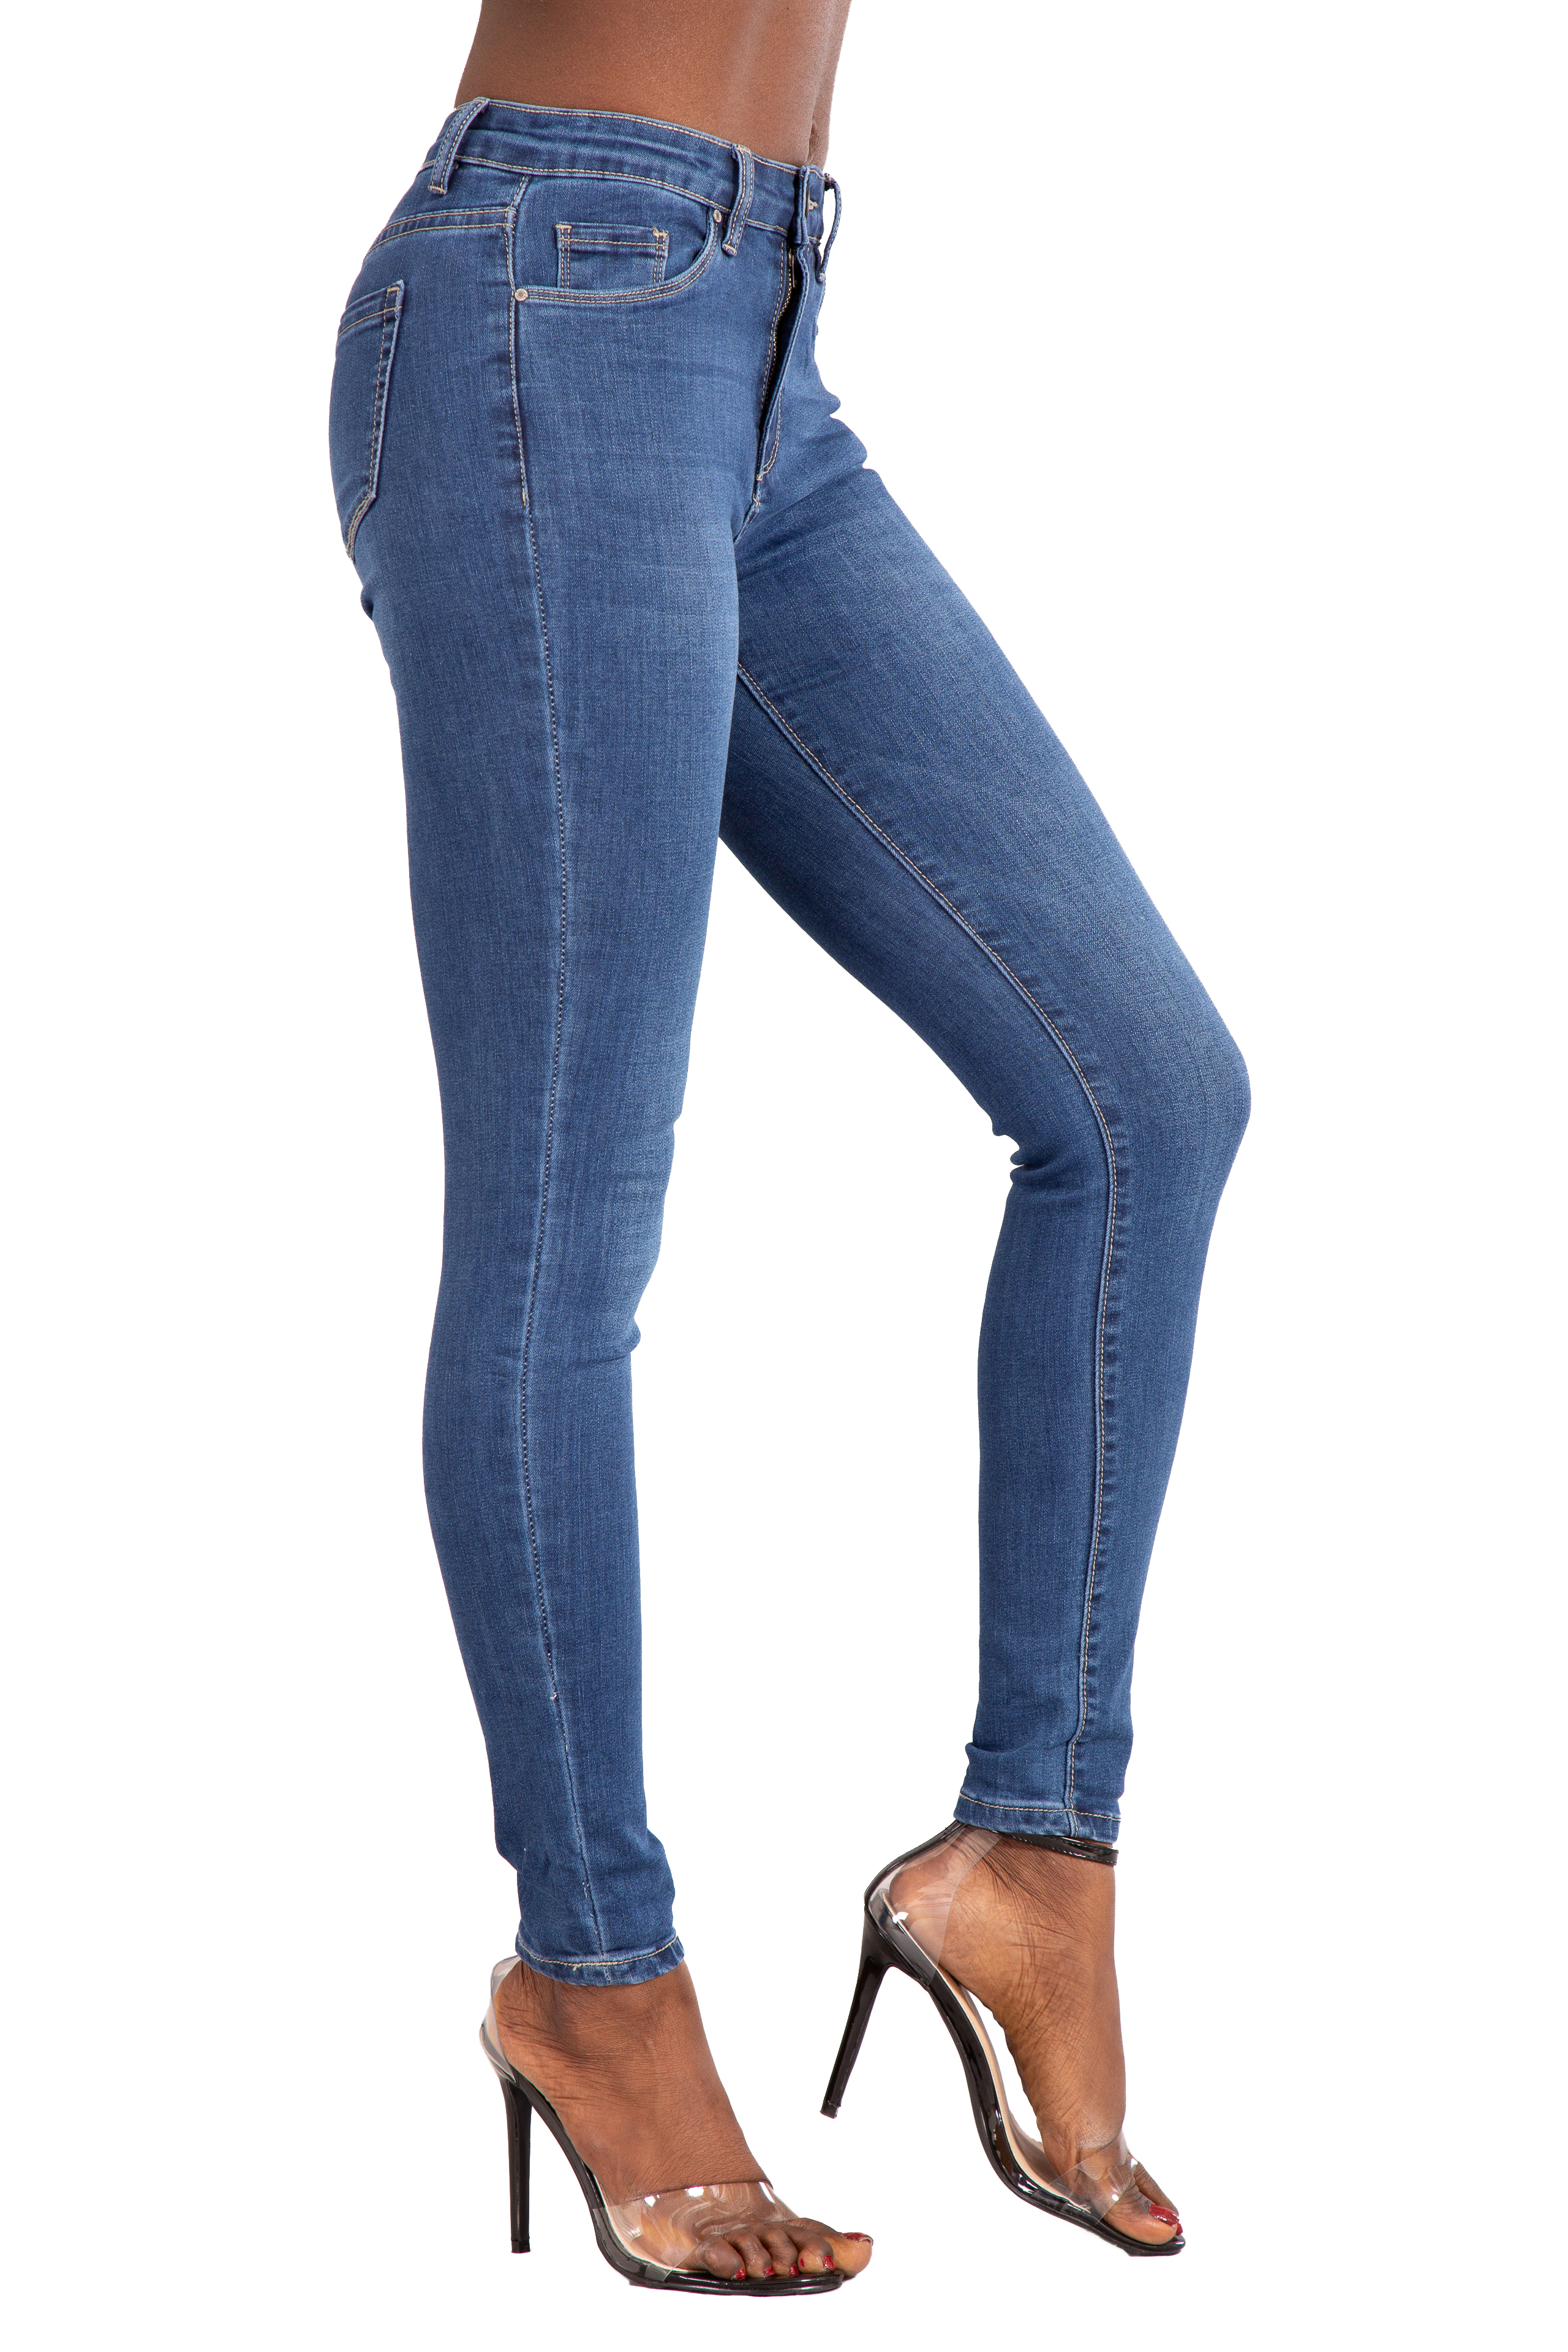 WOMENS HIGH WAISTED STRETCHY SKINNY SLIM TUBE JEANS LADIES JEGGINGS PANTS 6-20